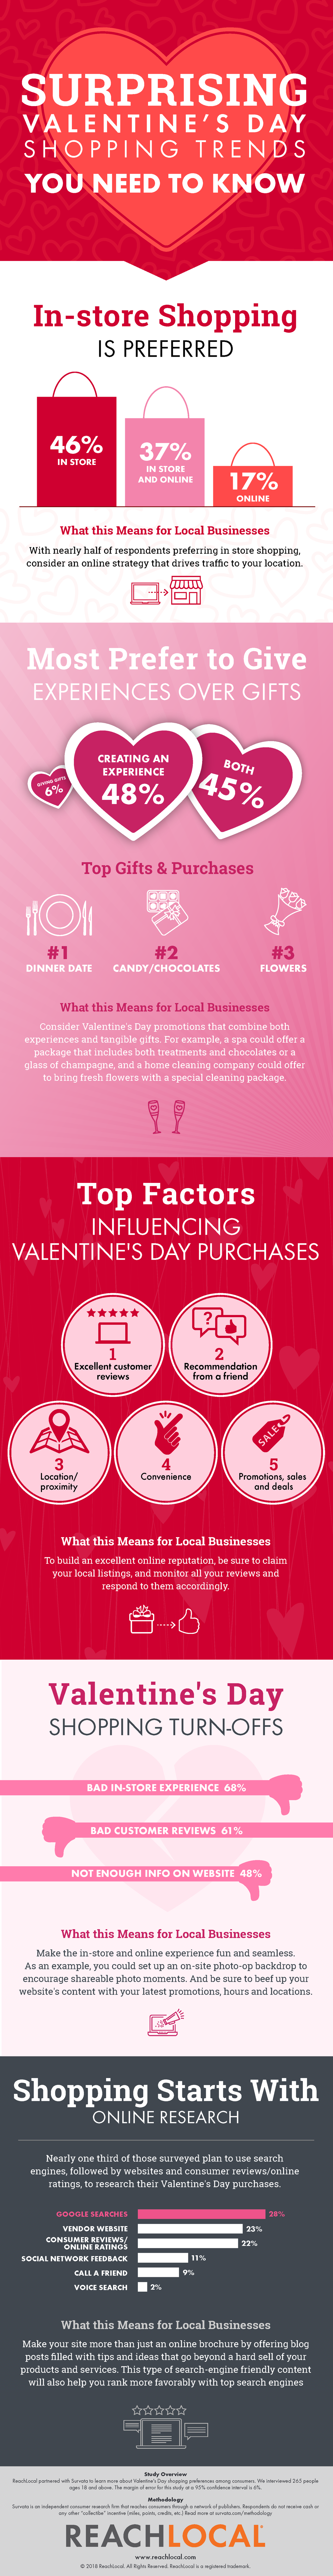 ReachLocal Infographic: Valentine's Day Shopping Trends